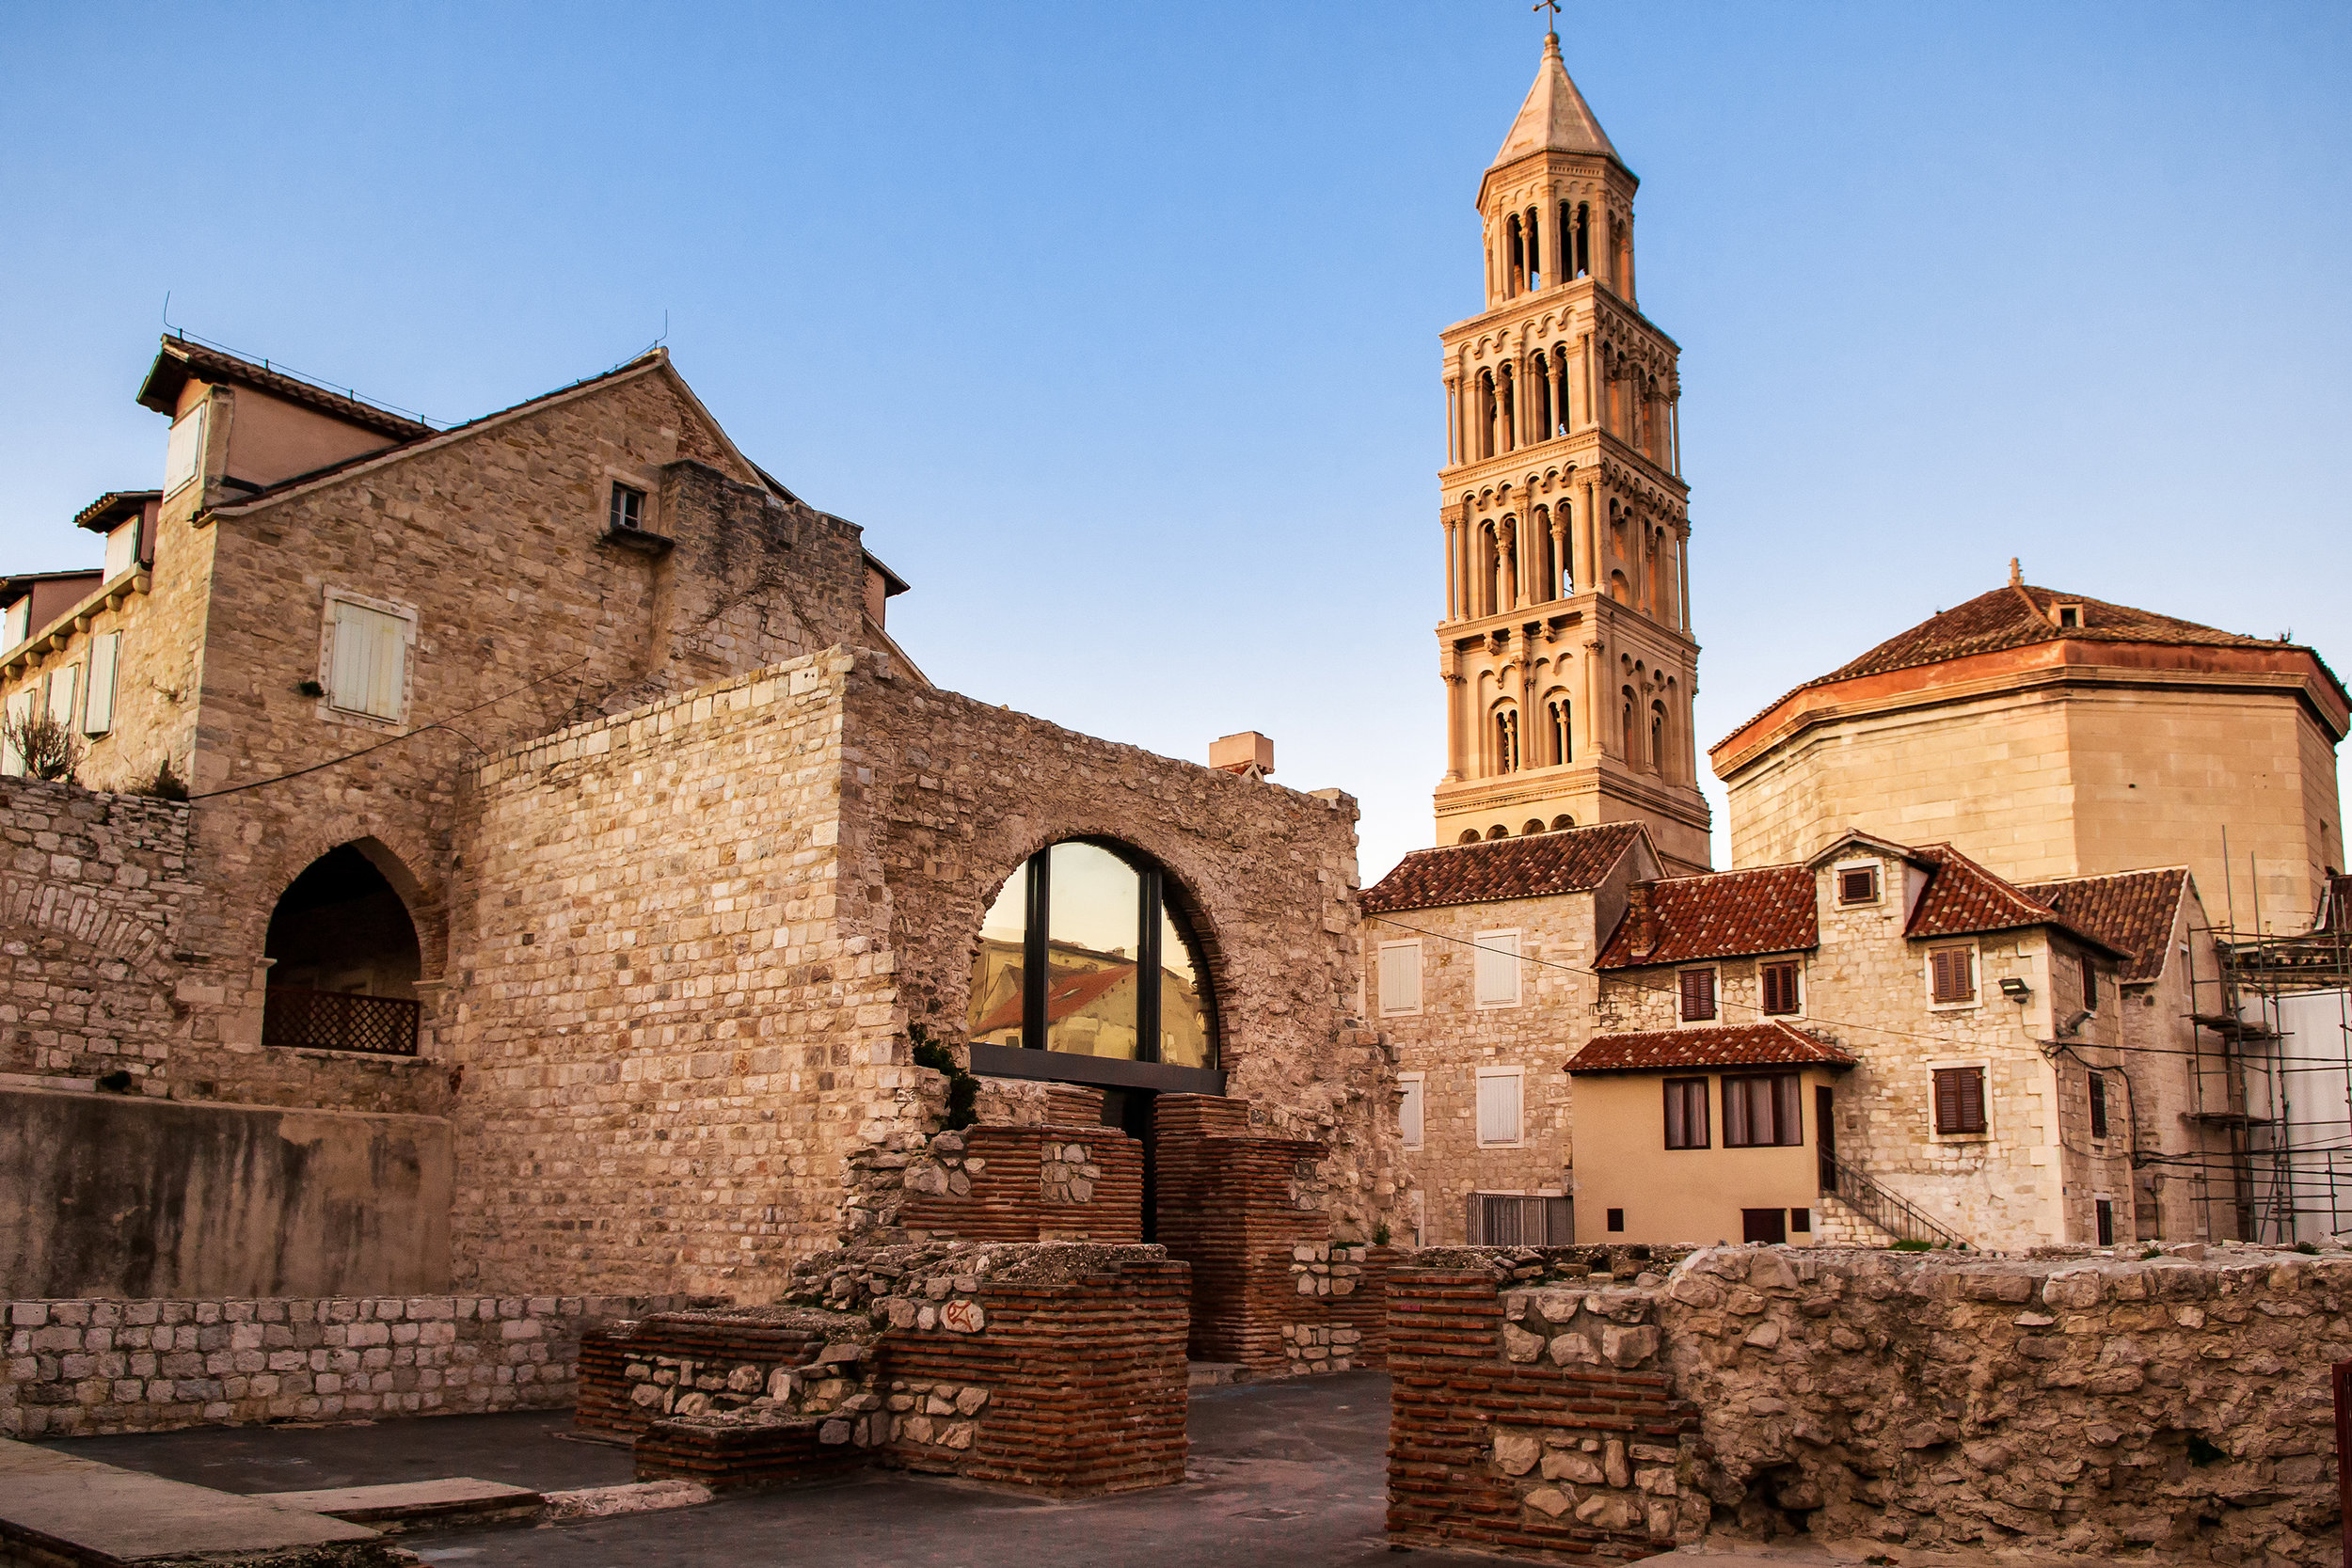 Explore the 1000 year old walled town of Zadar